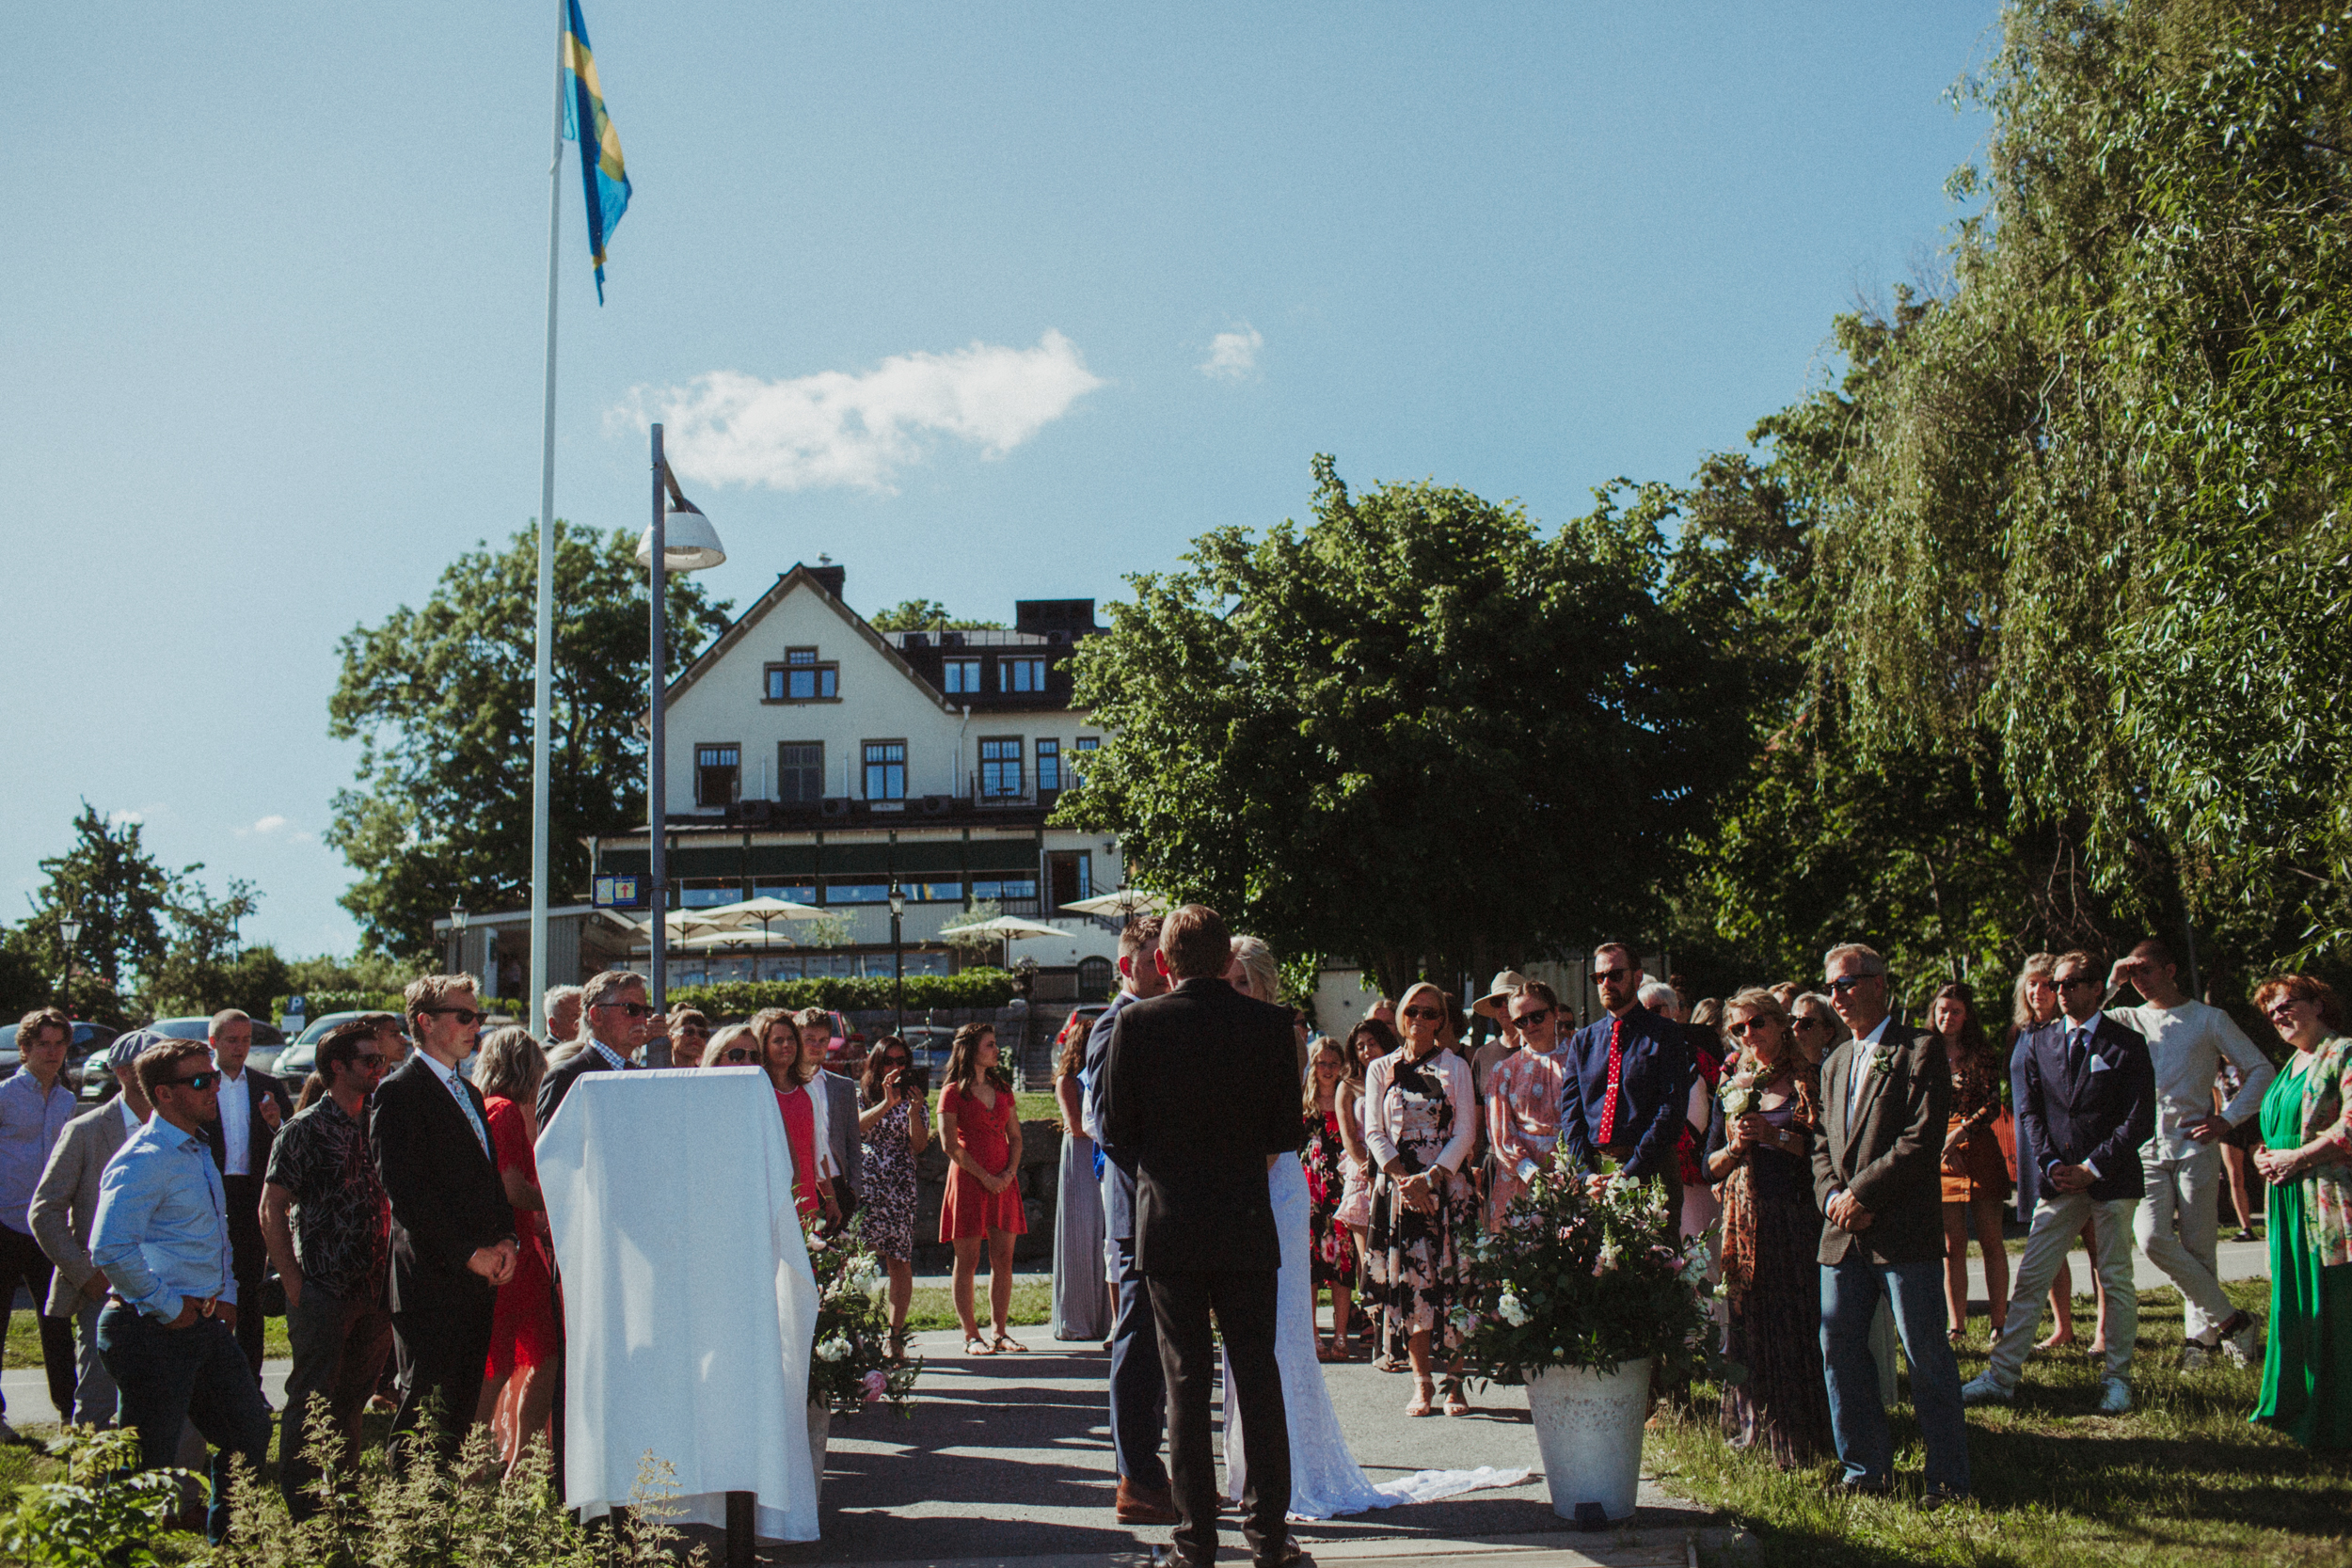 sigtuna-sweden-wedding_m_e-82.jpg